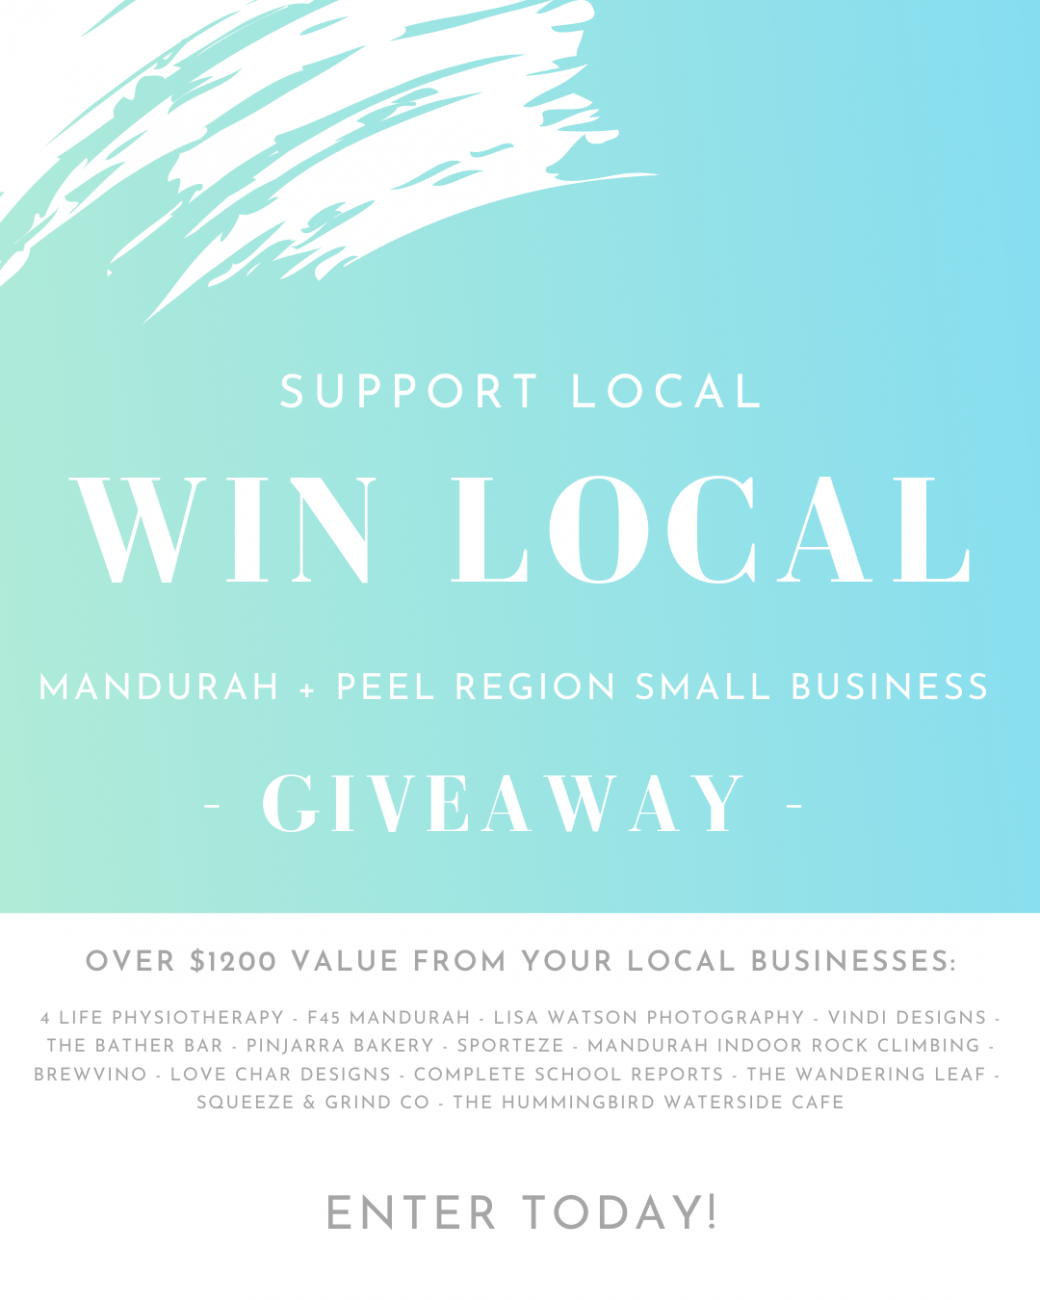 Lisa Watson Photography Mandurah Photographer - Support Local Win Local giveaway competition small business